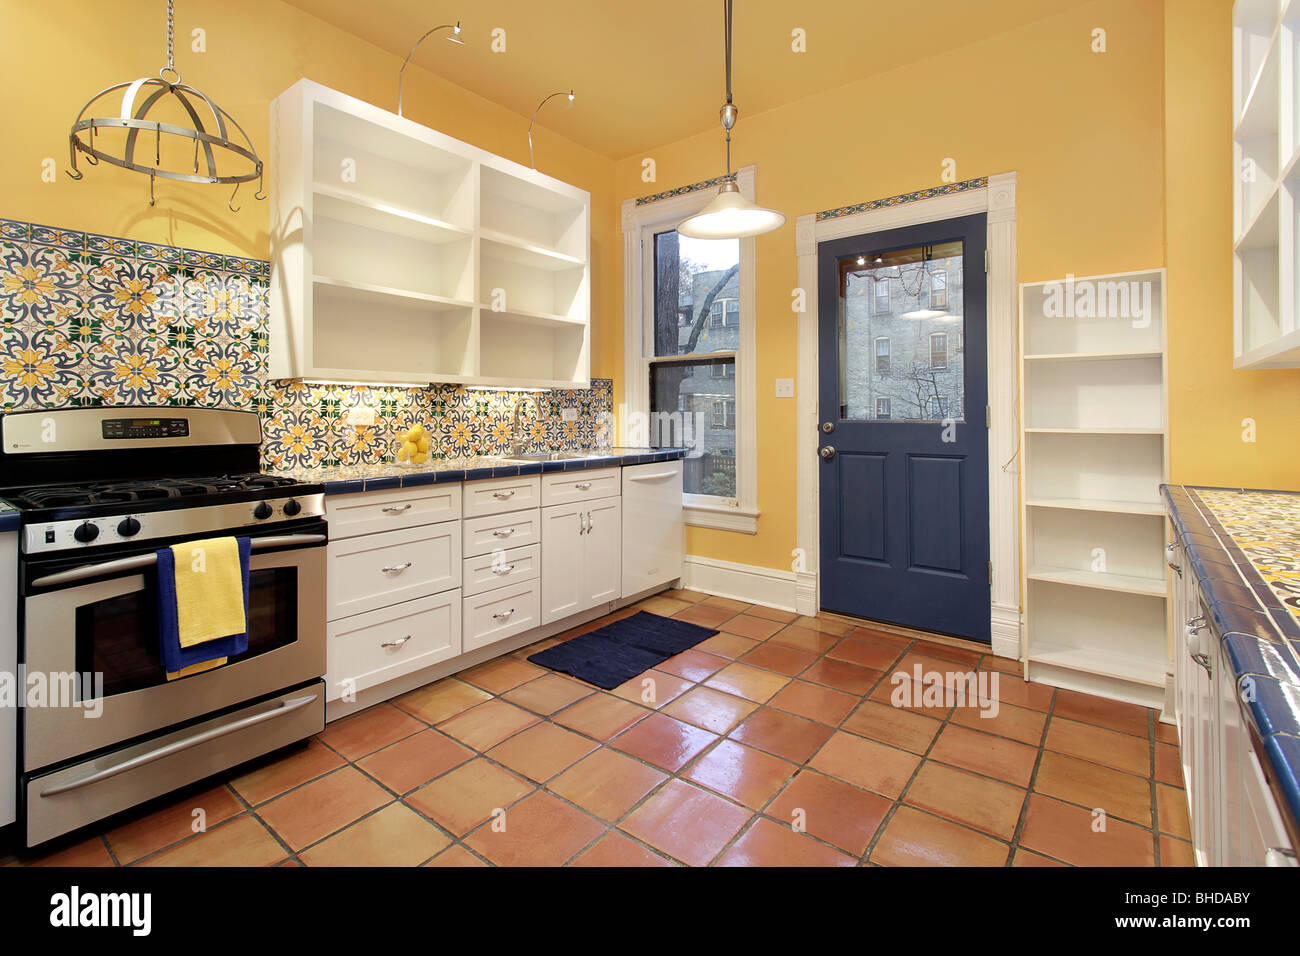 Kitchen in suburban home with terra cotta floor tile and yellow kitchen in suburban home with terra cotta floor tile and yellow walls dailygadgetfo Choice Image